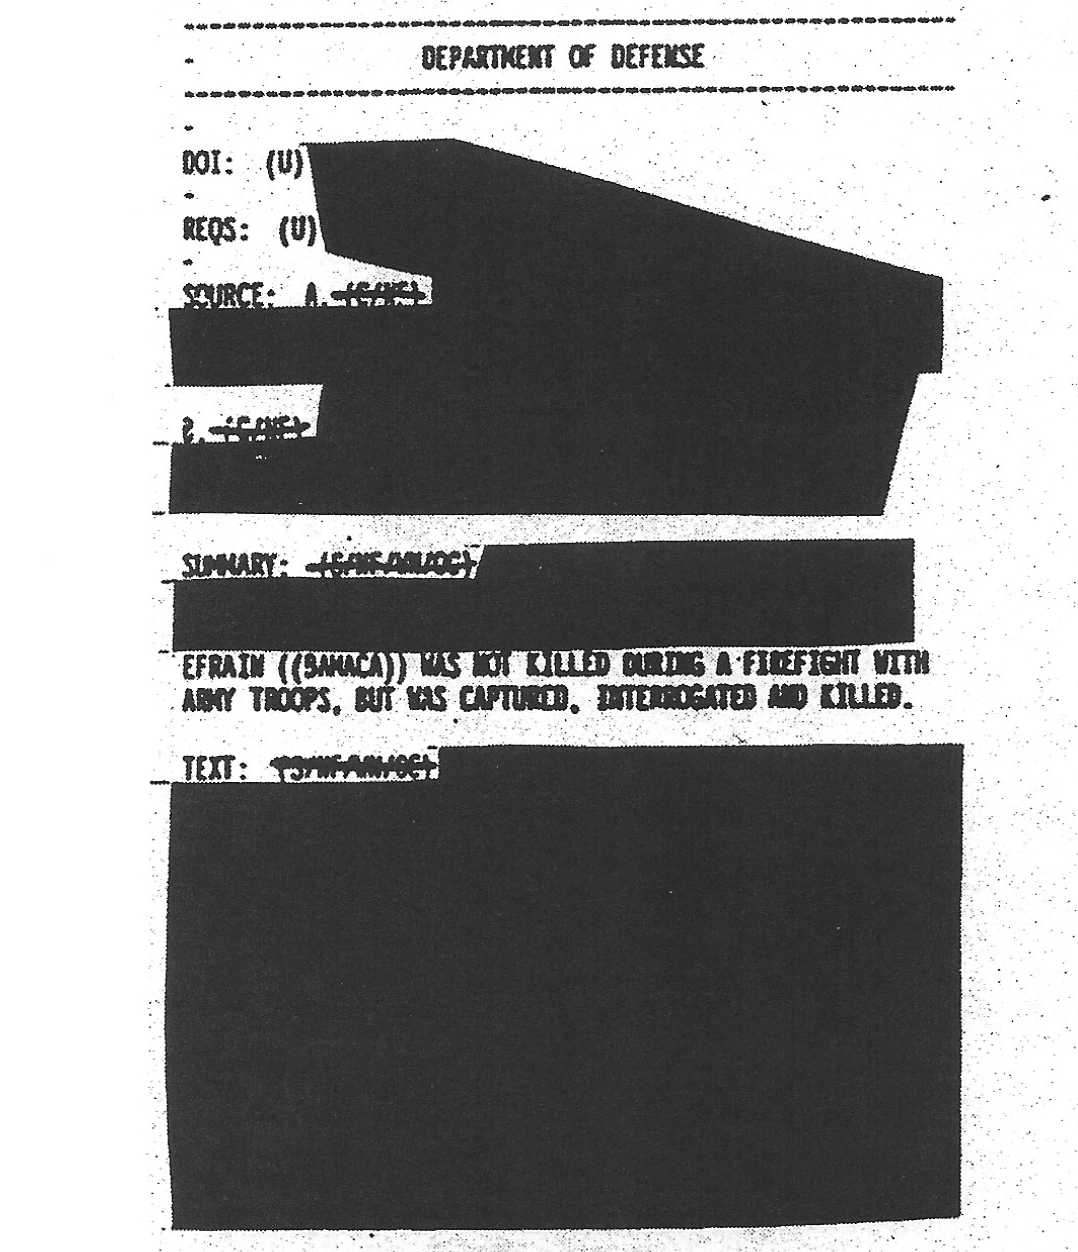 Fragment of declassified Department of Defense document acknowledging that Everardo (Efraín Bámaca) had not been killed, contrary to what Jennifer was told by US government representatives.